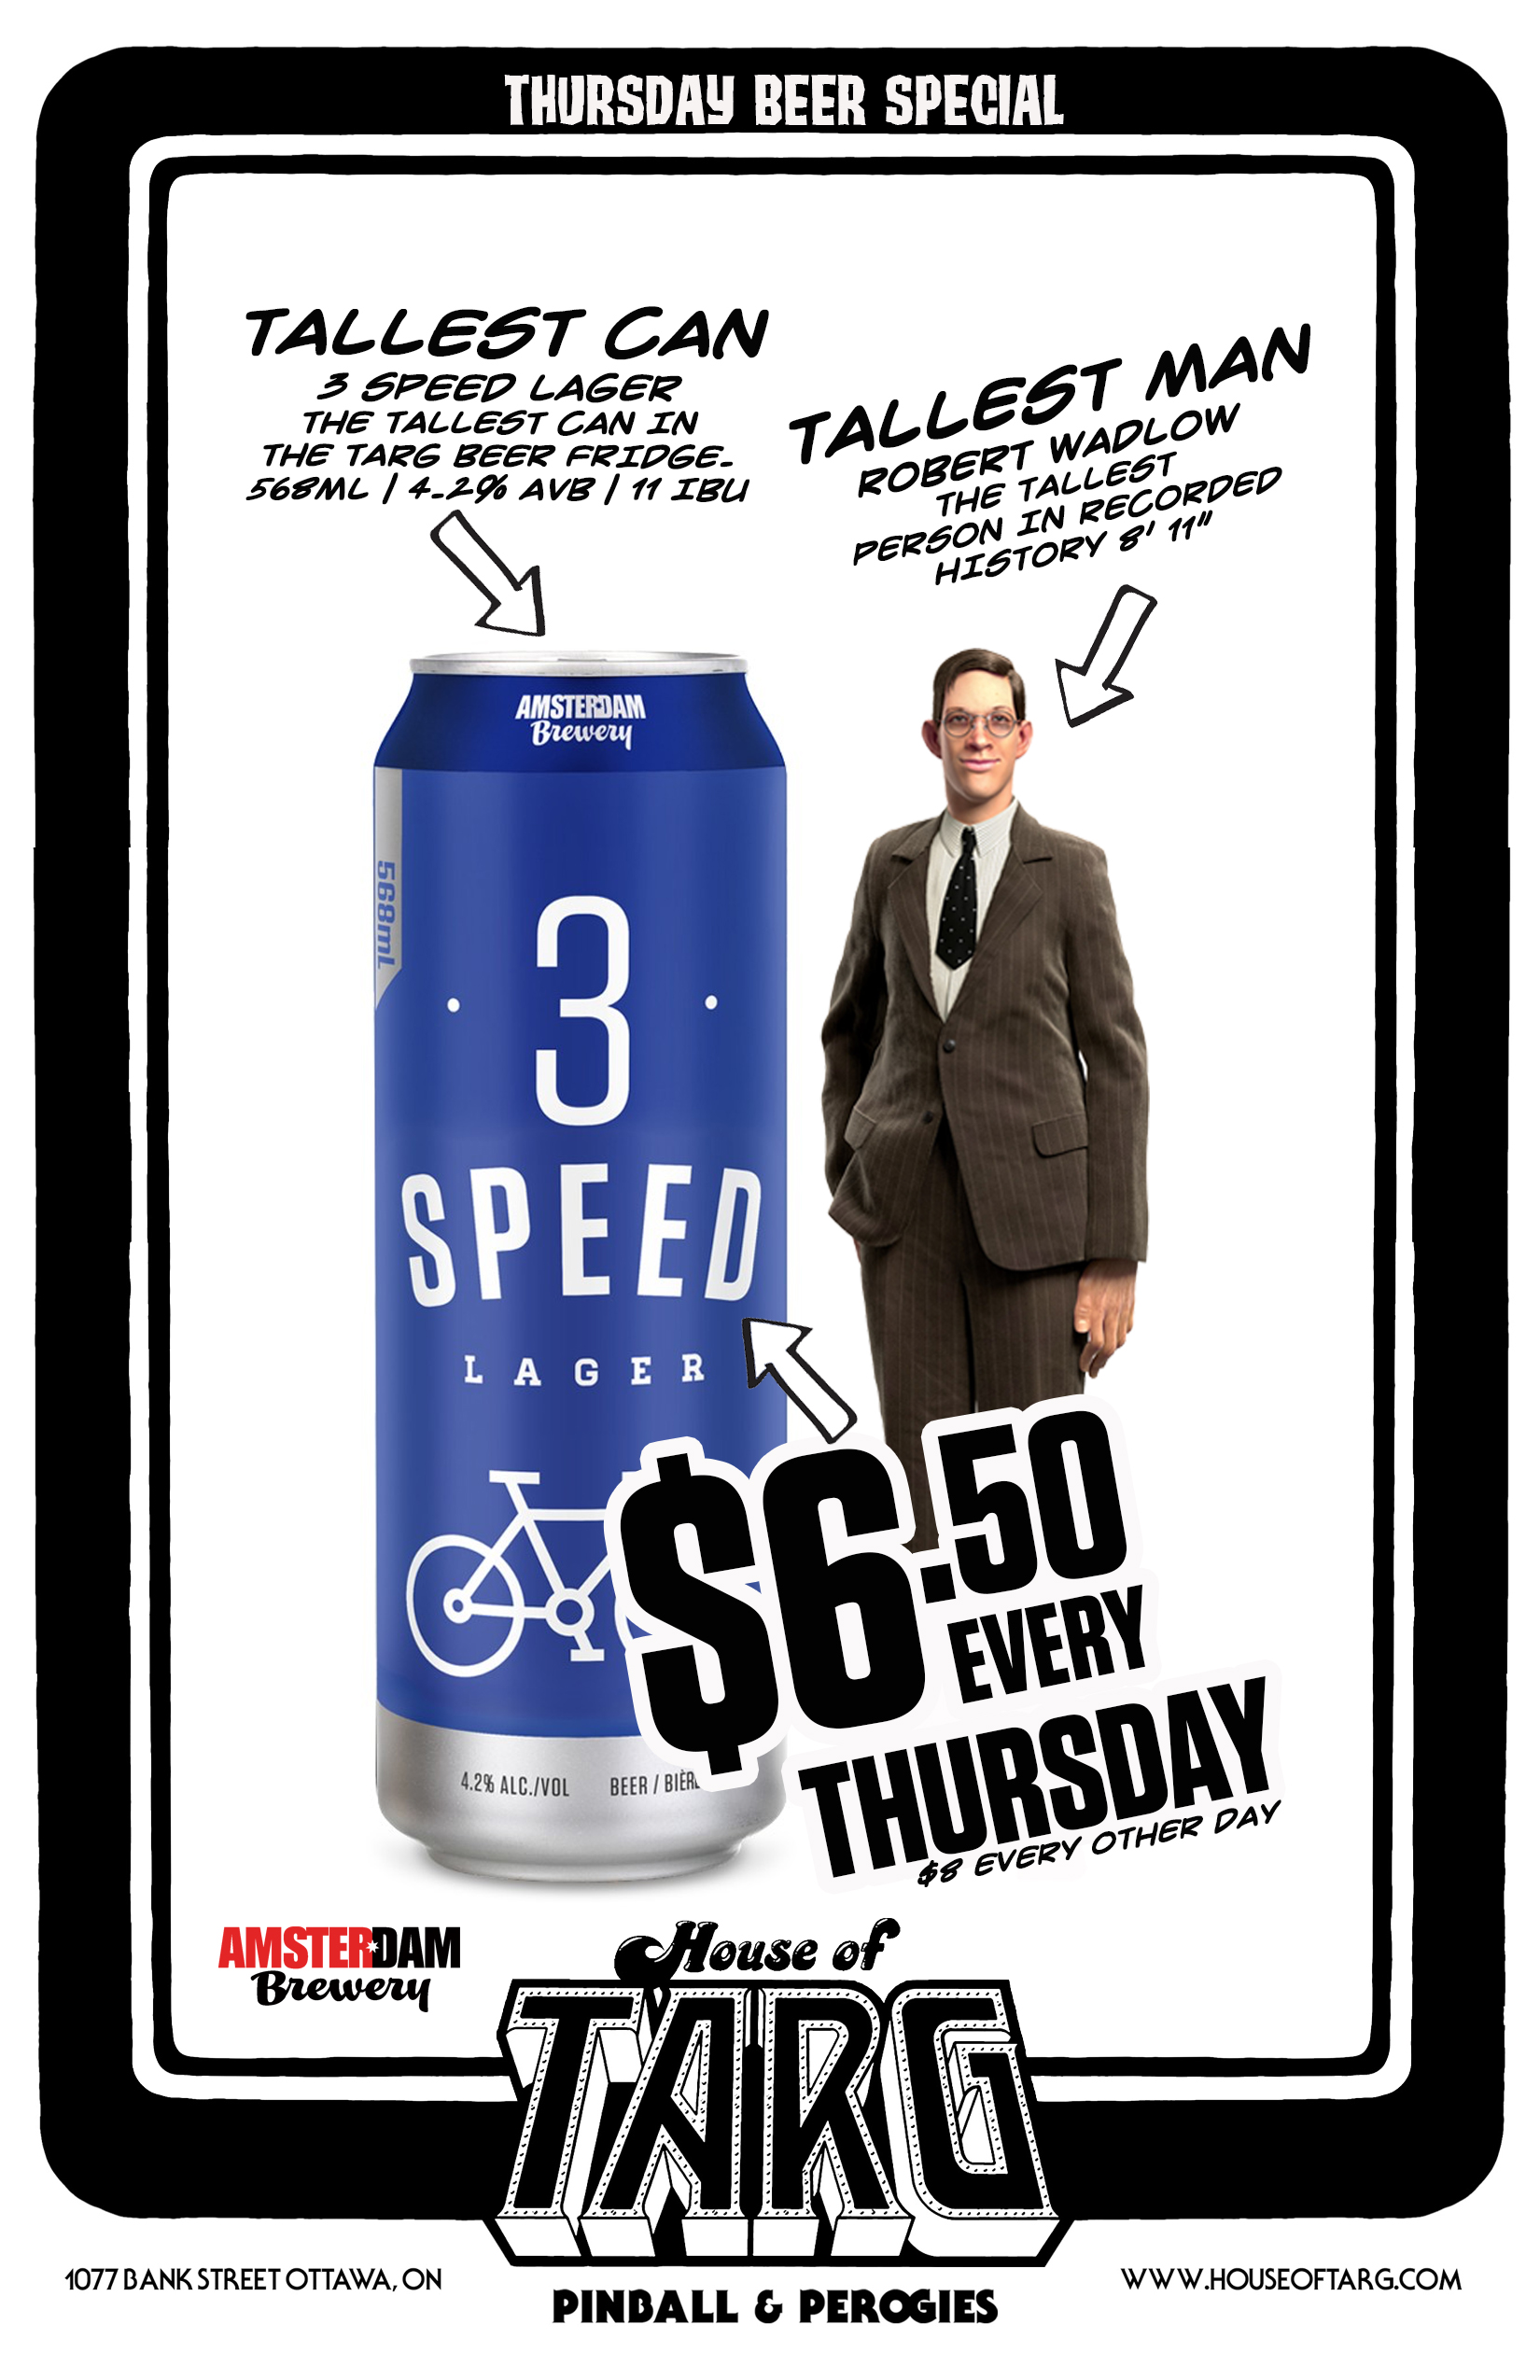 3 speed thurs Promo.jpg